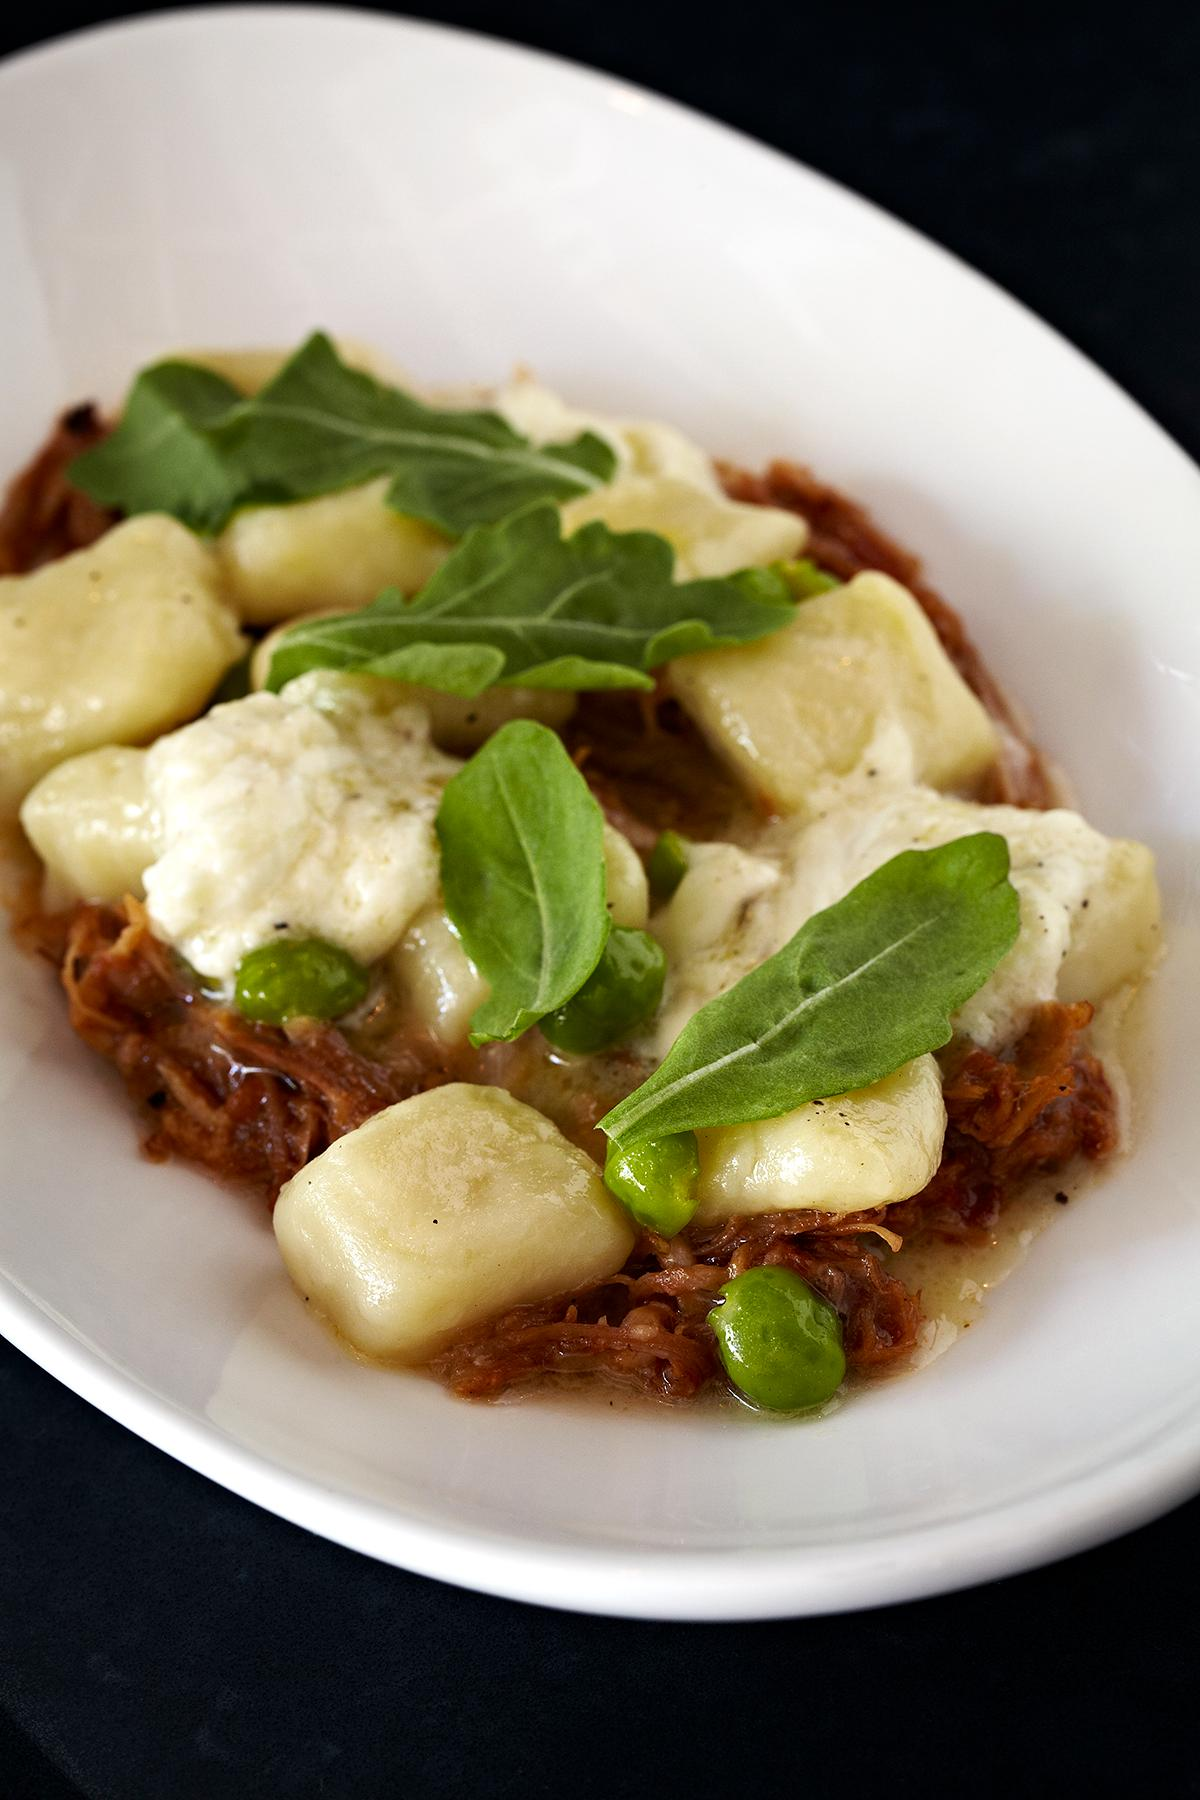 Potato Gnocchi with Short Rib Ragu, Chili Flake and Robiolina (Photo courtesy: Graffiato)<p></p>